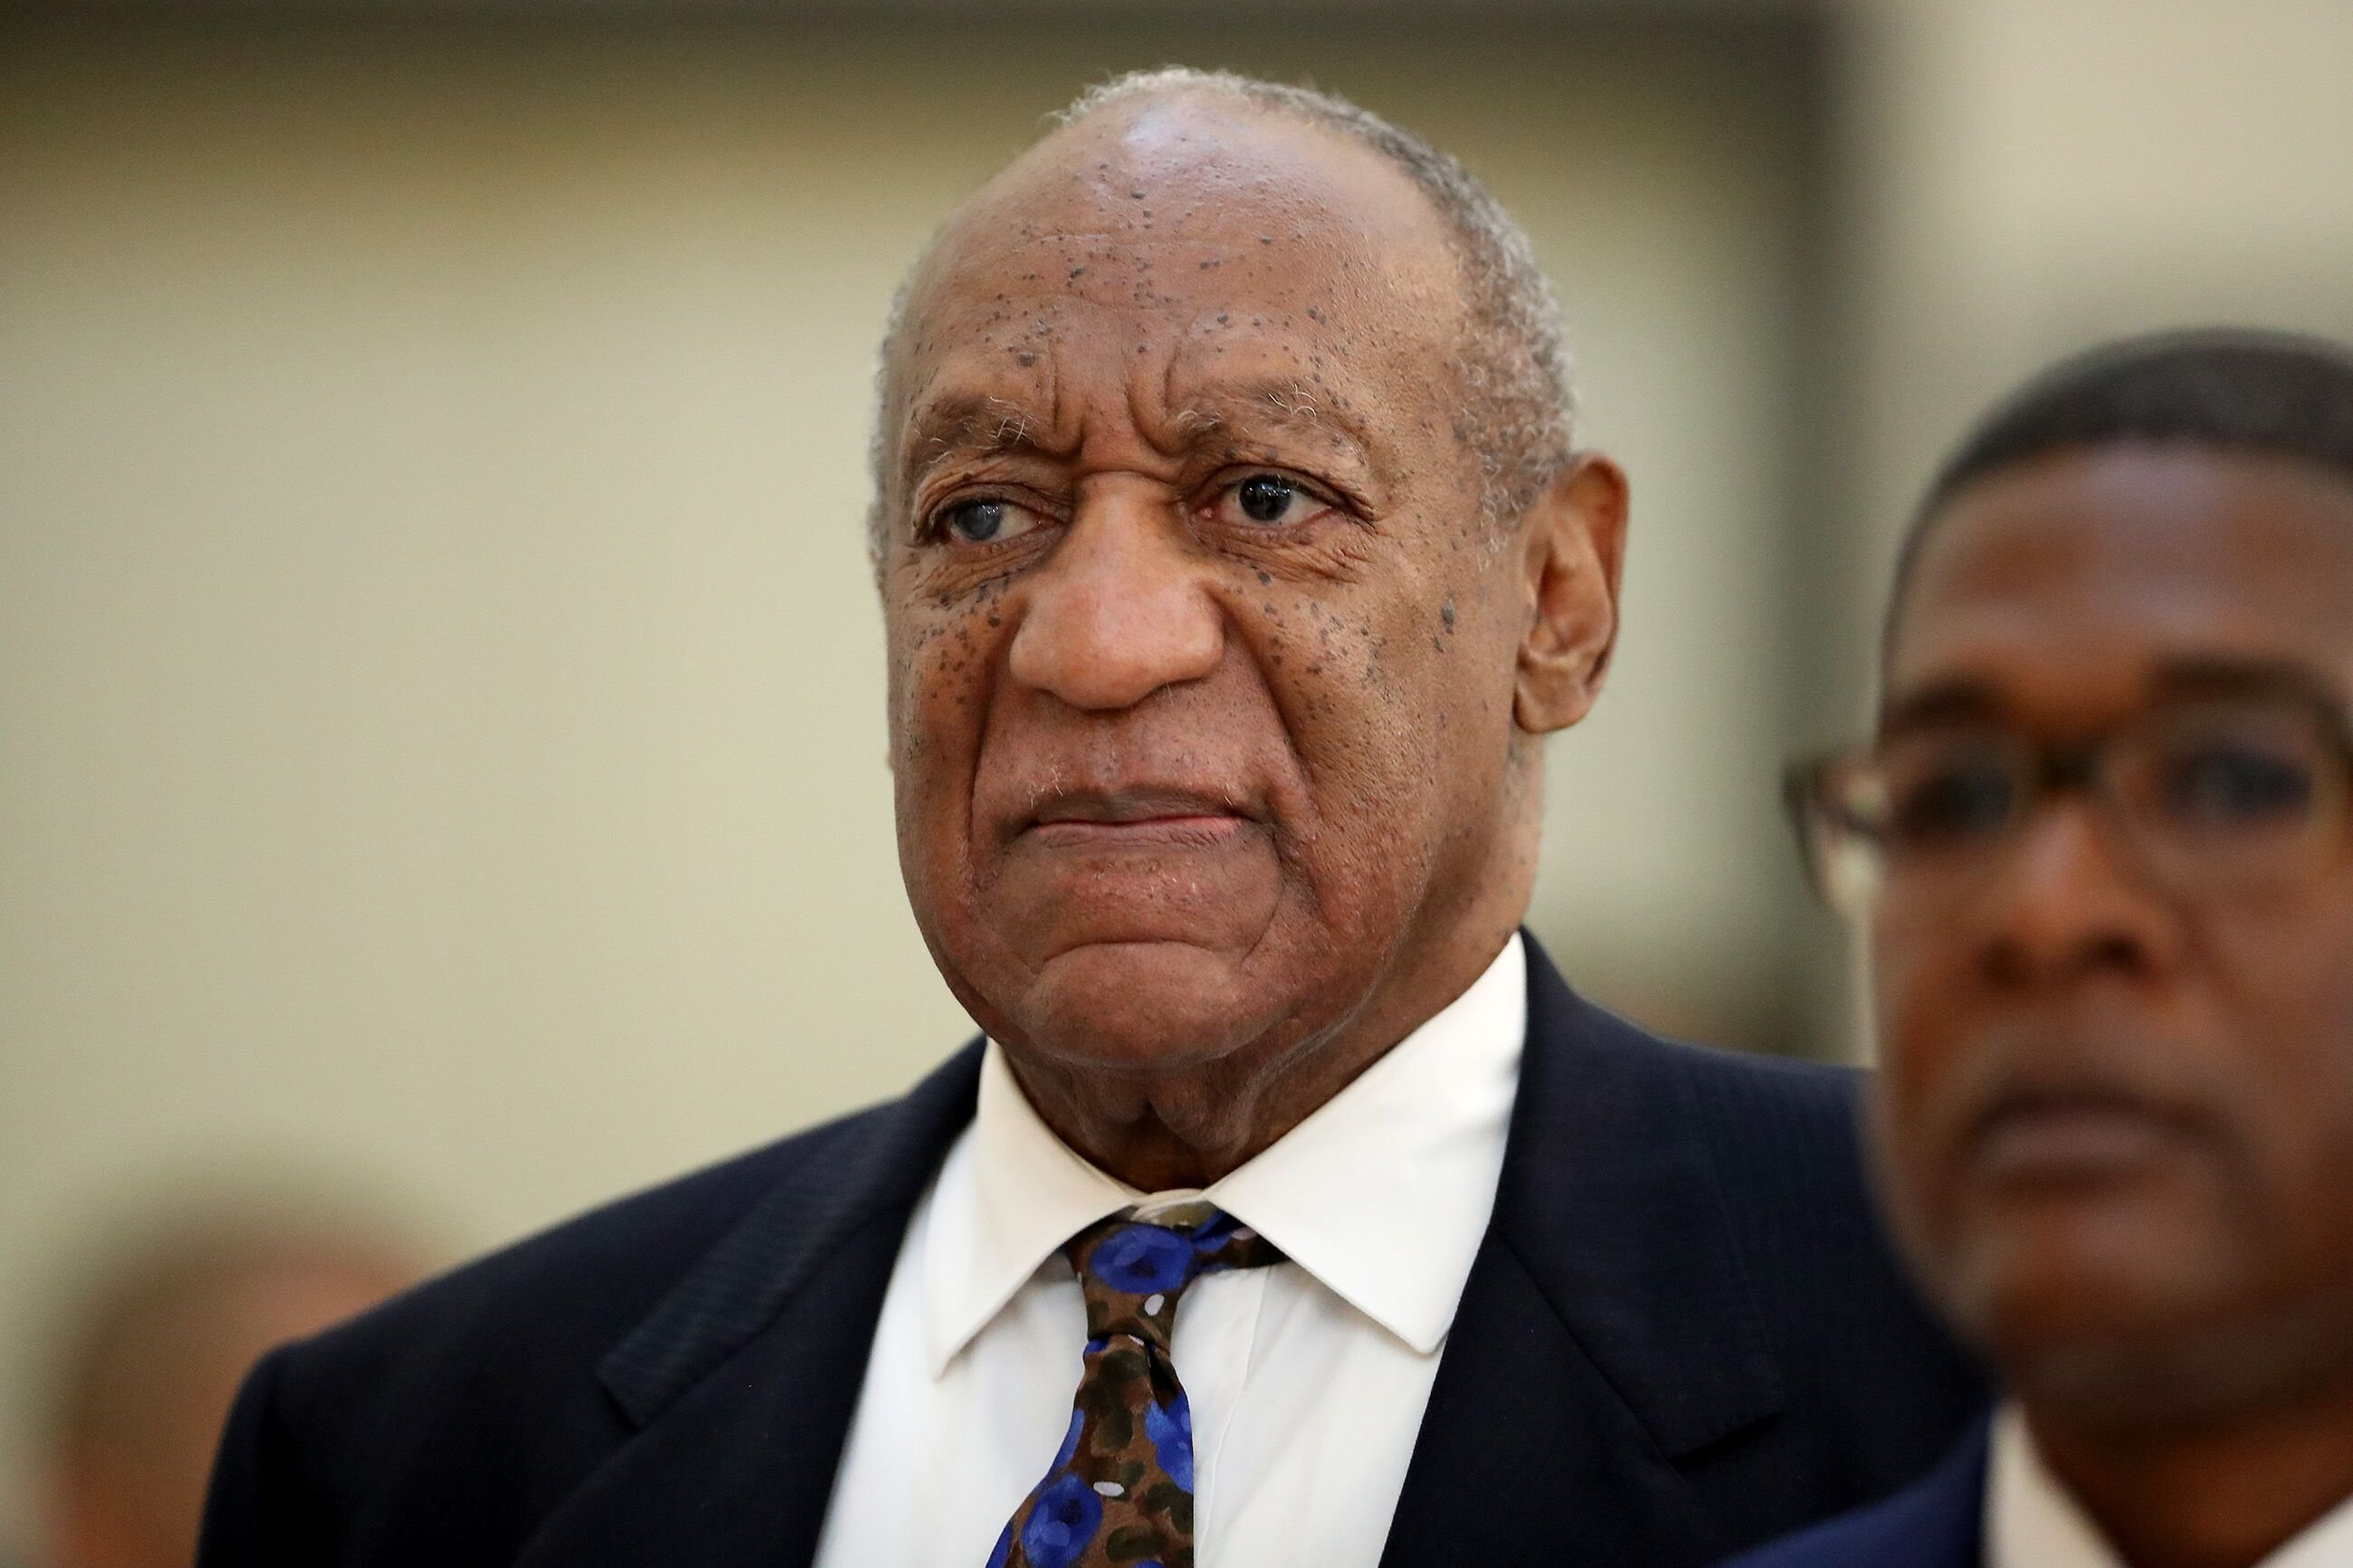 Bill Cosby arrives for his sentencing at the Montgomery County Courthouse. | Source: Getty Images